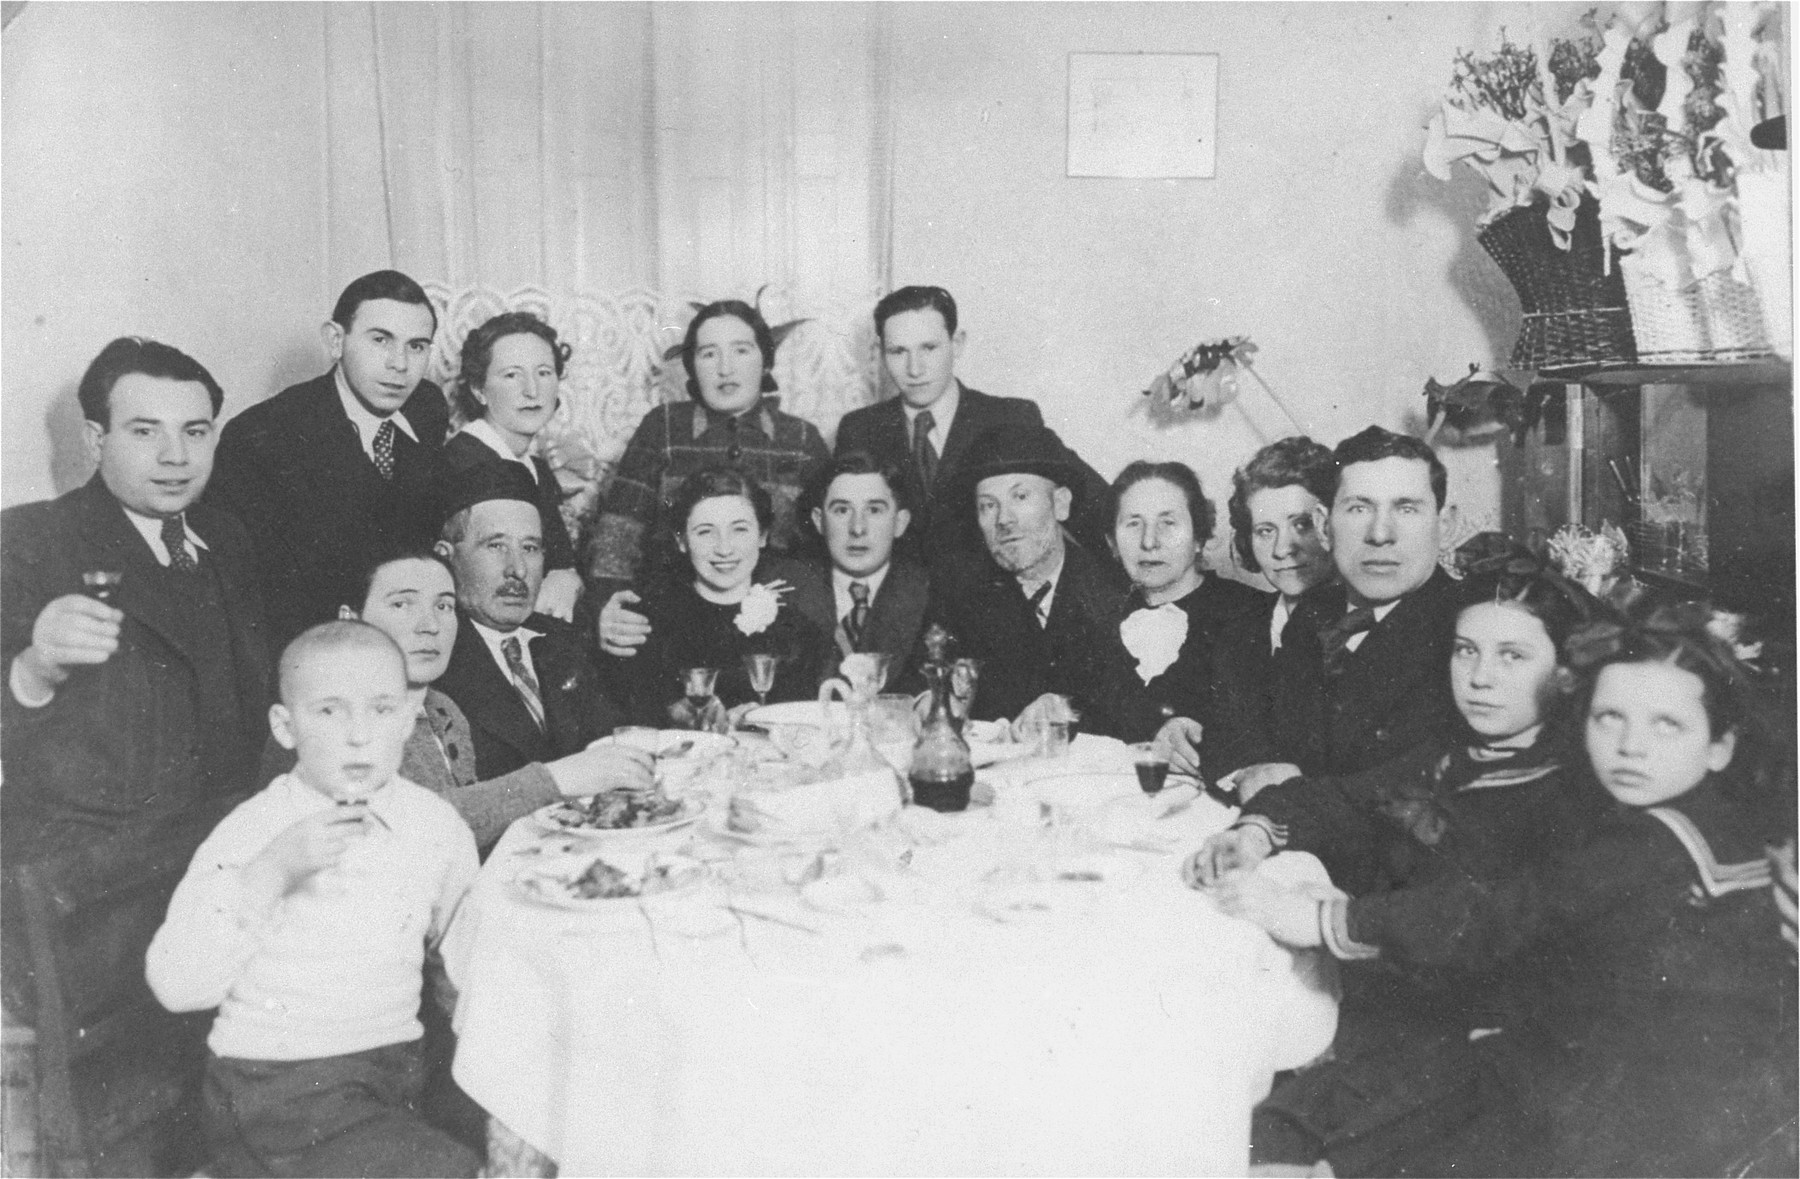 Portrait of members of the Wisgardisky family seated around a table during an engagement party for Yente Wisgardisky and Berl Berk.  Yente Wisgardisky is the aunt of the donor, Henia Lewin.  Pictured standing behind, from left to right are: Melech; Jona and Gita; unknown; and Hershel Wisgardisky.  Seated from right to left are: four members of the Apzig family (two daughters and their parents, who were all killed by the Germans); the donor's grandparents; Berl Berk; and Yente Wisgardisky.  The man seated third from the left has been tentatively identified as Josel (Josef) Berk, father of Berl Berk.